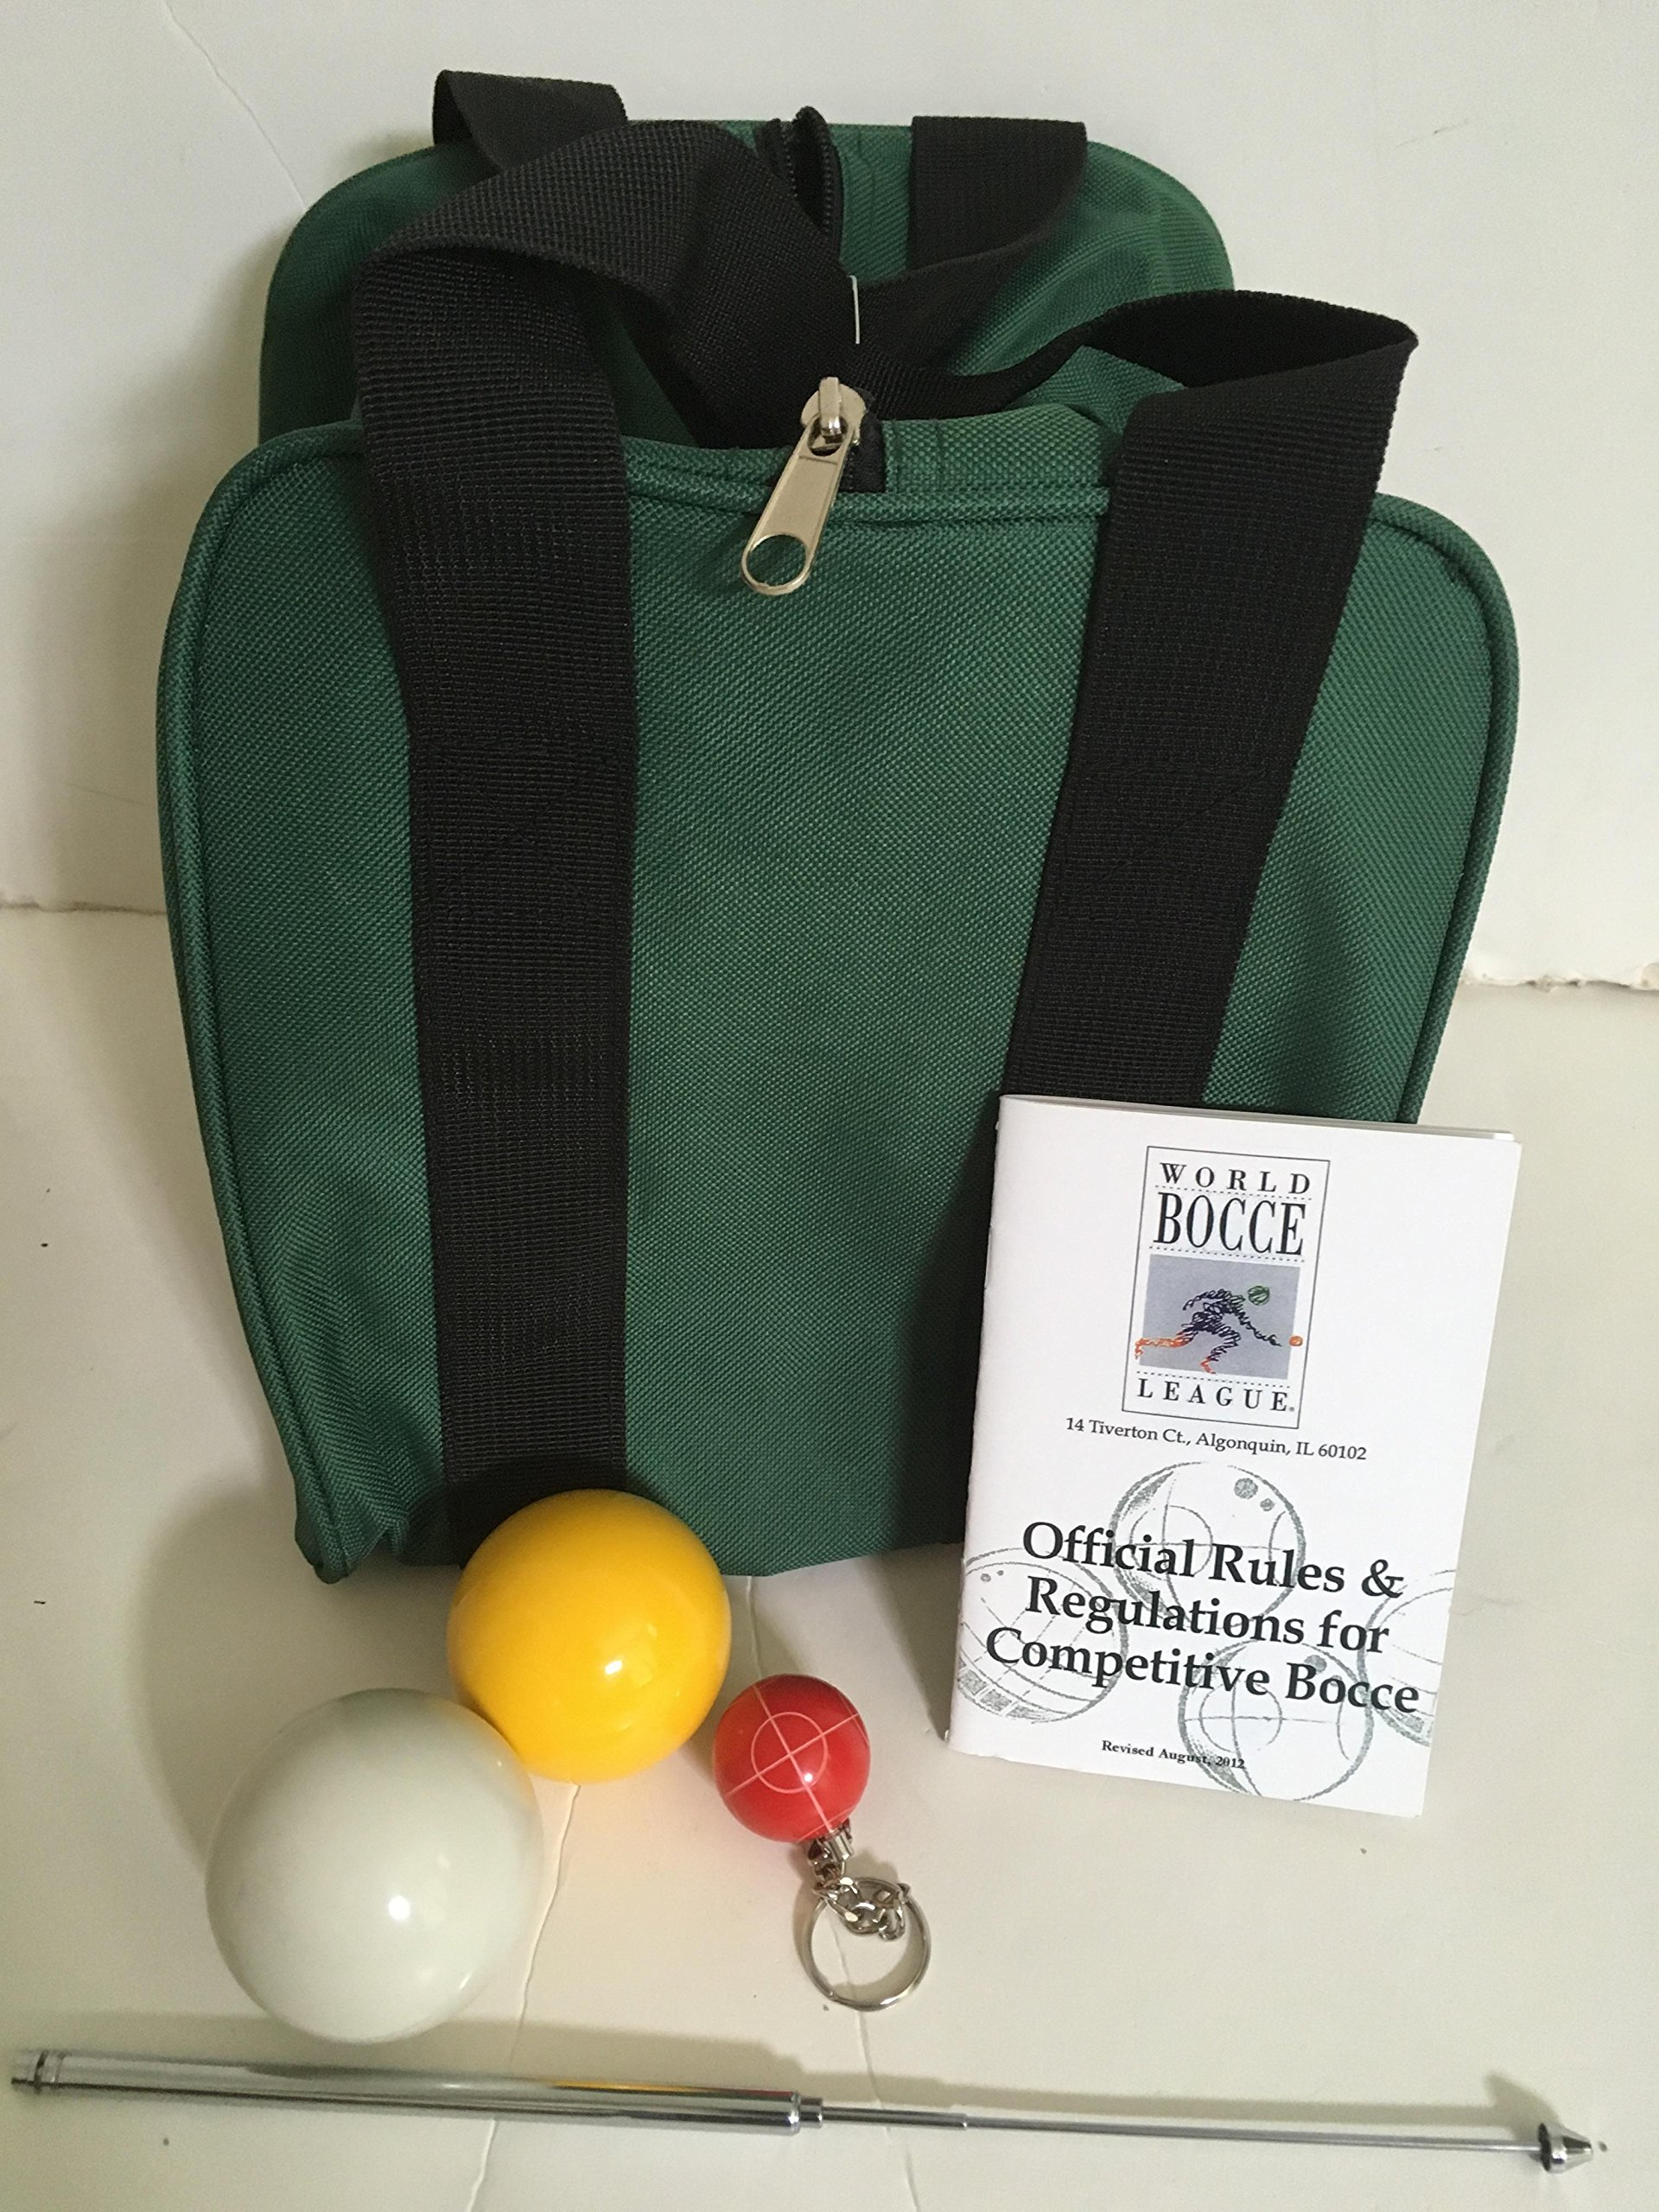 Unique Bocce Ball Accessories Package - Extra Heavy Duty Nylon Bocce Bag (Green with Black Handles), yellow and white pallinas, Extendable Measuring Device, Rule Book and Keychain by BuyBocceBalls